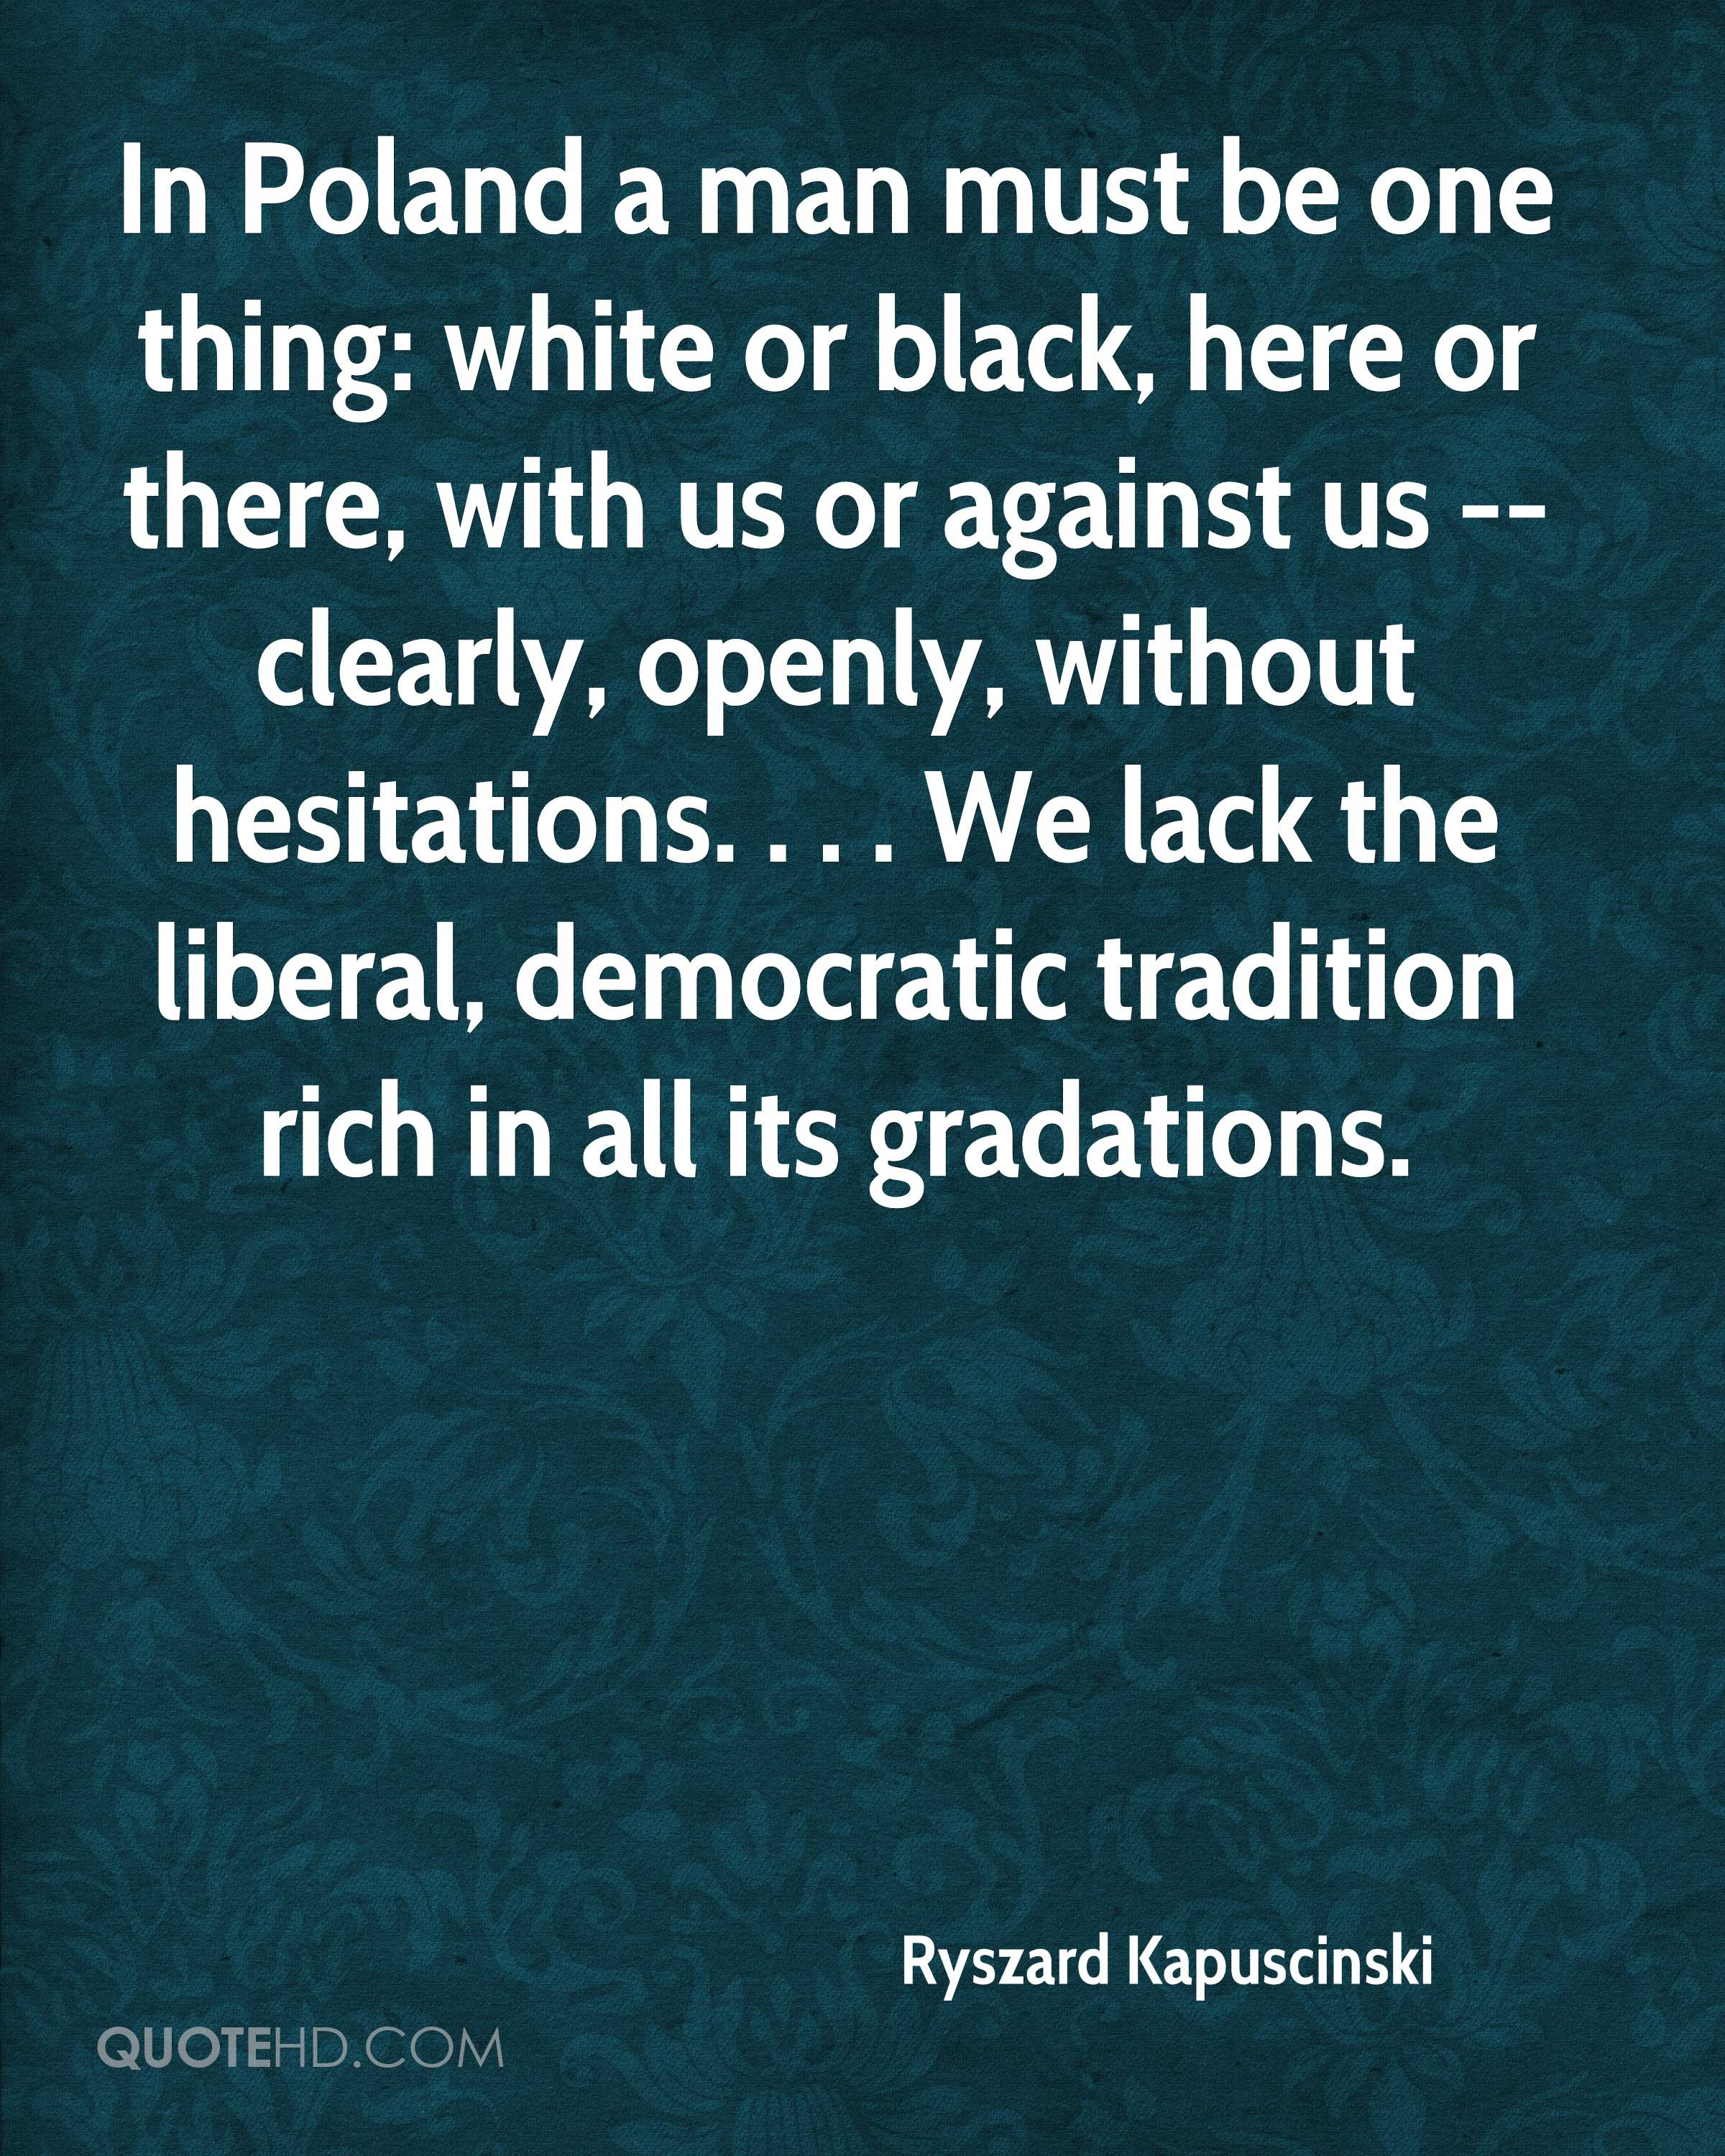 In Poland a man must be one thing: white or black, here or there, with us or against us --clearly, openly, without hesitations. . . . We lack the liberal, democratic tradition rich in all its gradations.